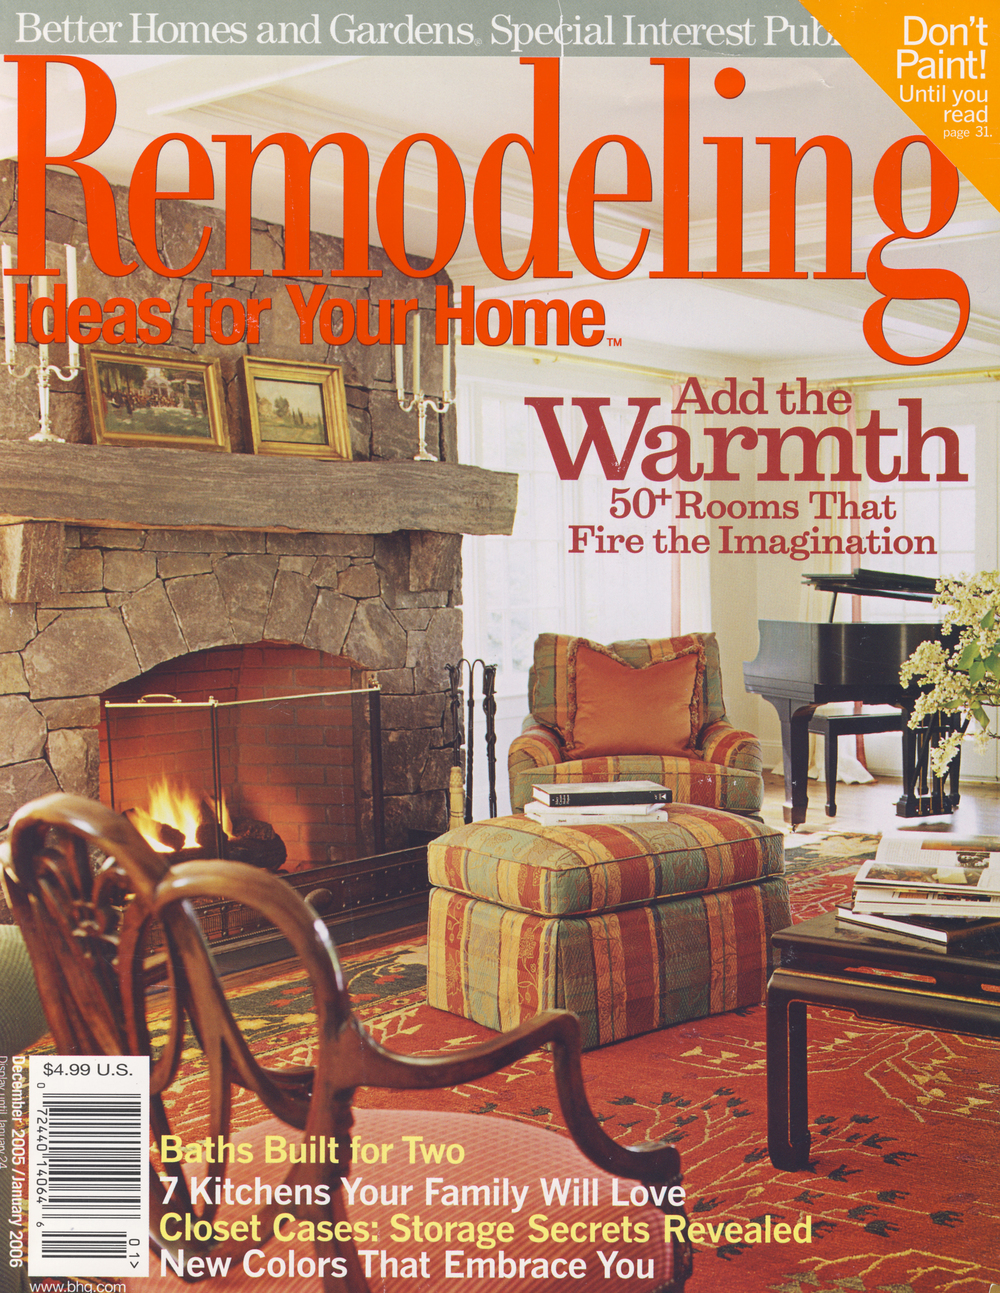 Fifth Street Better Homes & Gardens Special Remodeling Cover.jpg